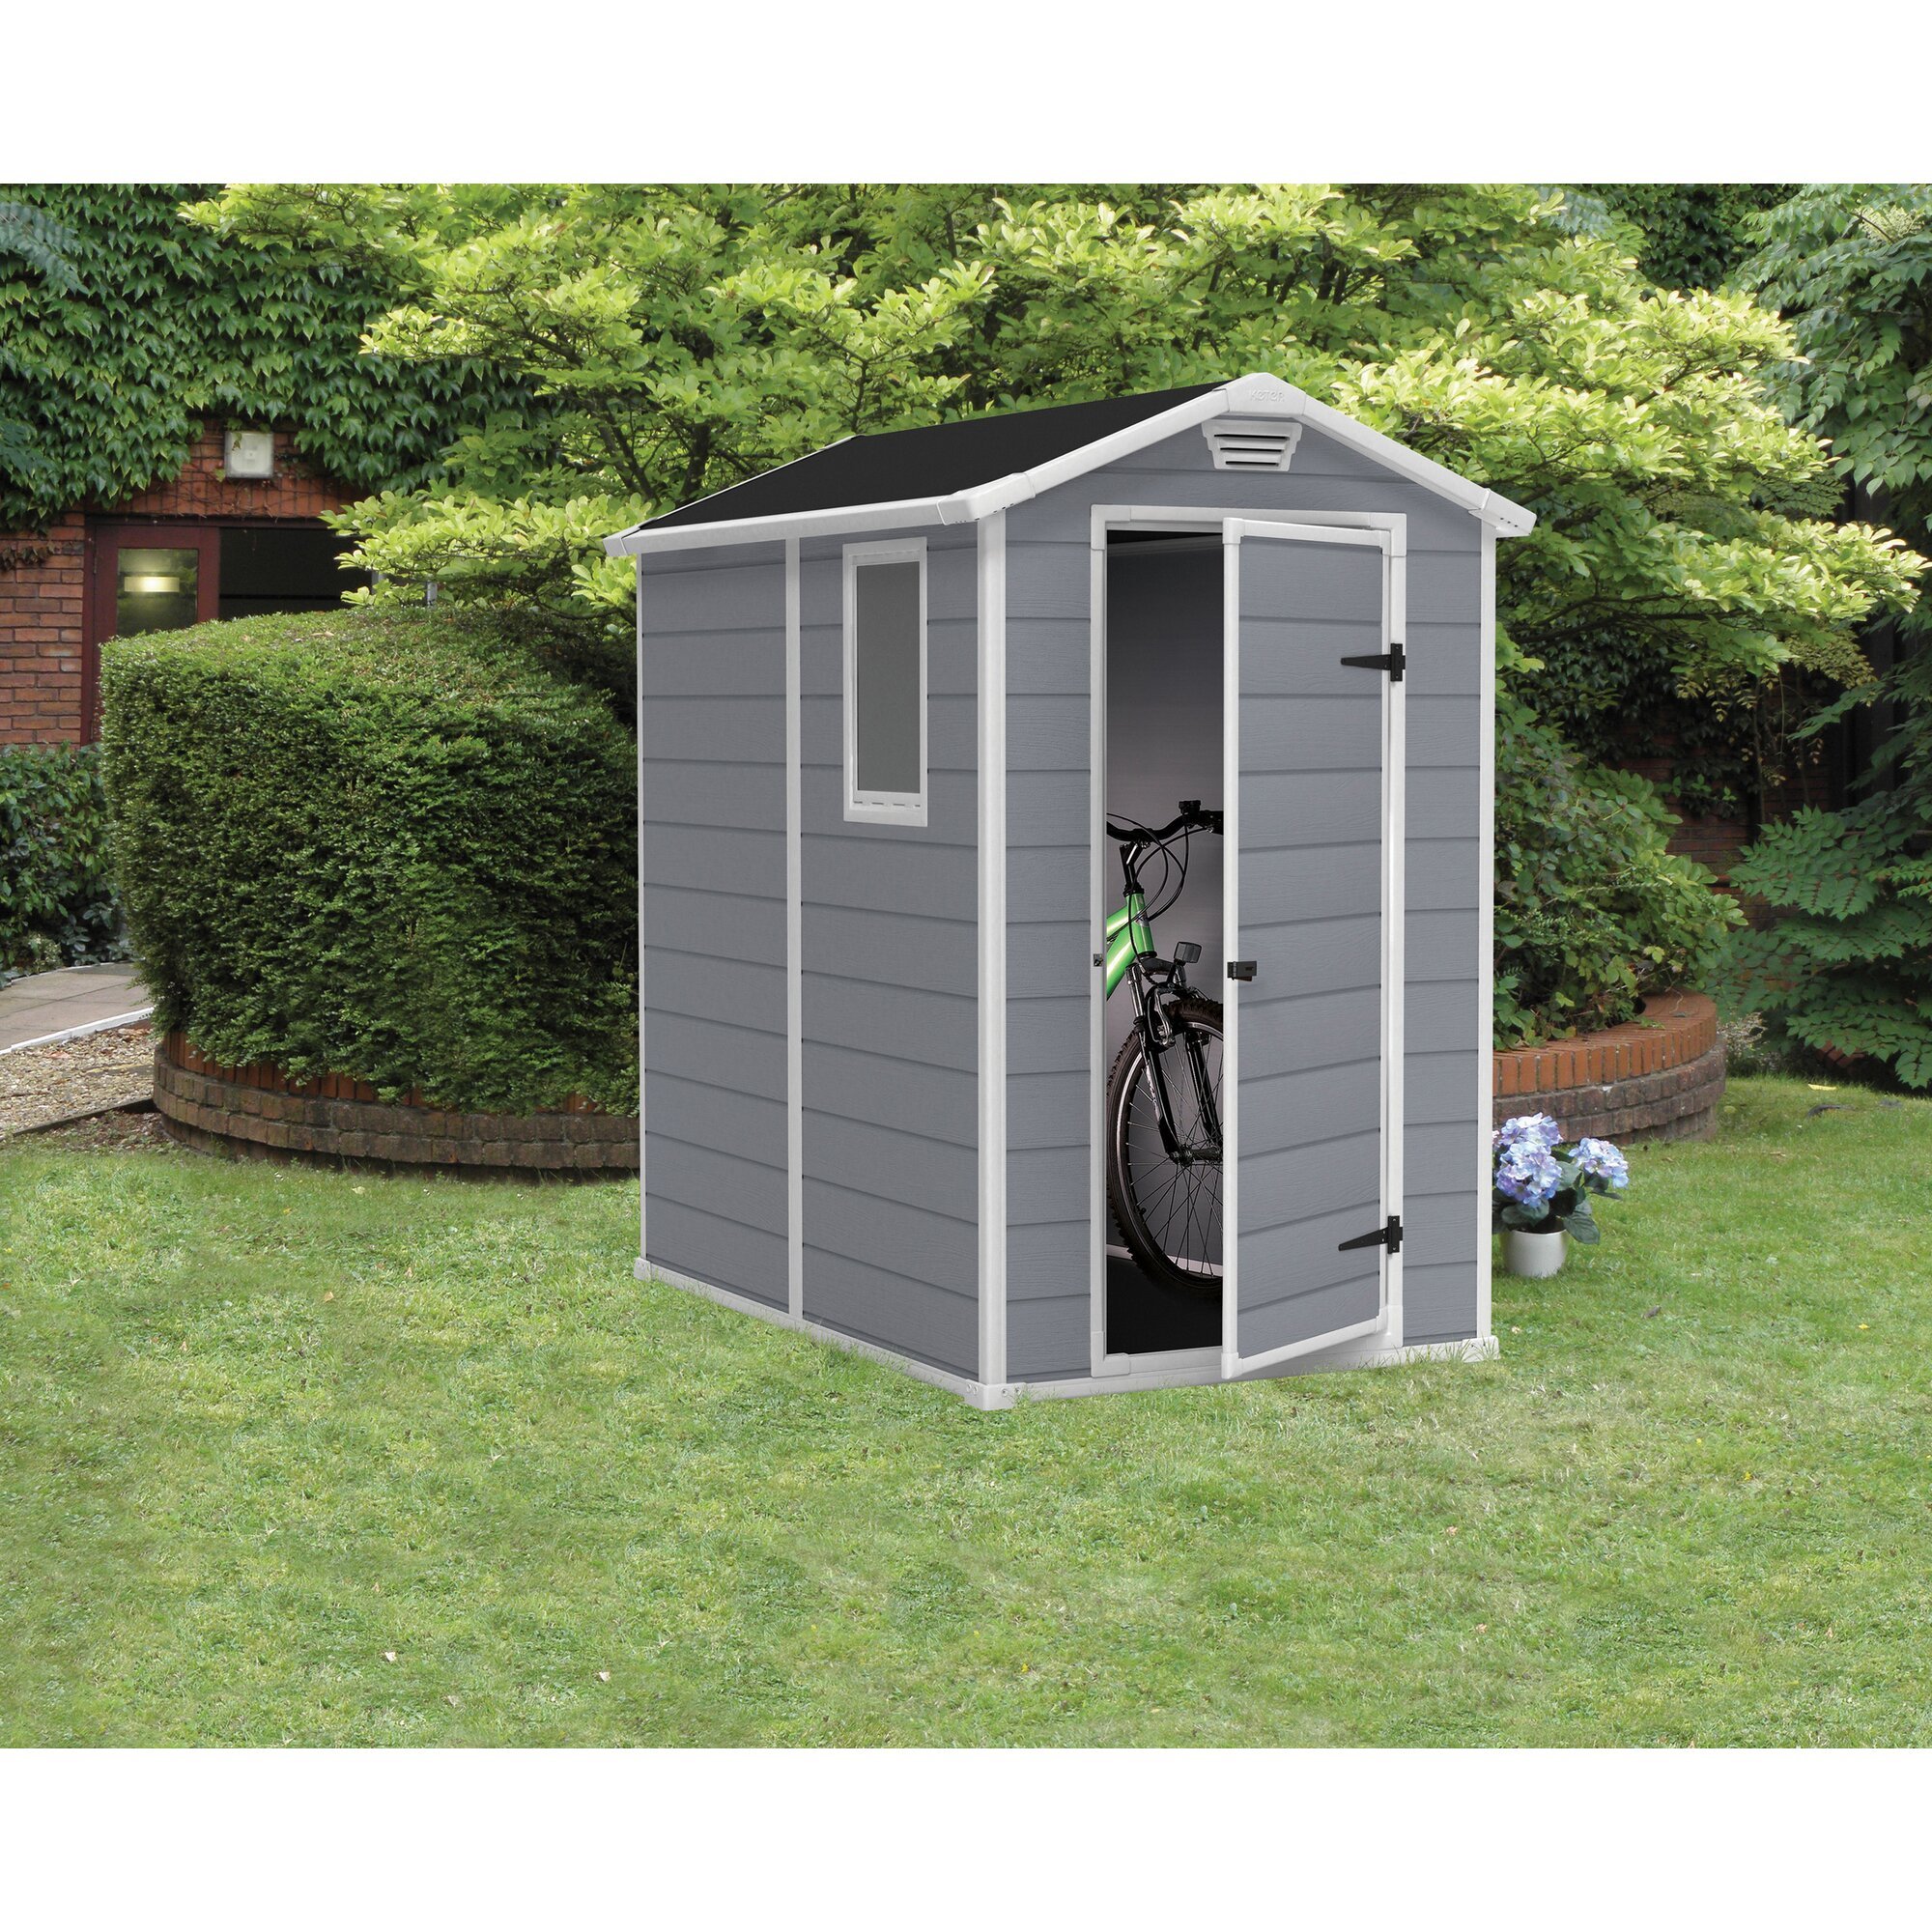 Keter manor 4 ft w x 6 3 ft d resin vertical storage for Garden shed 4 x 3